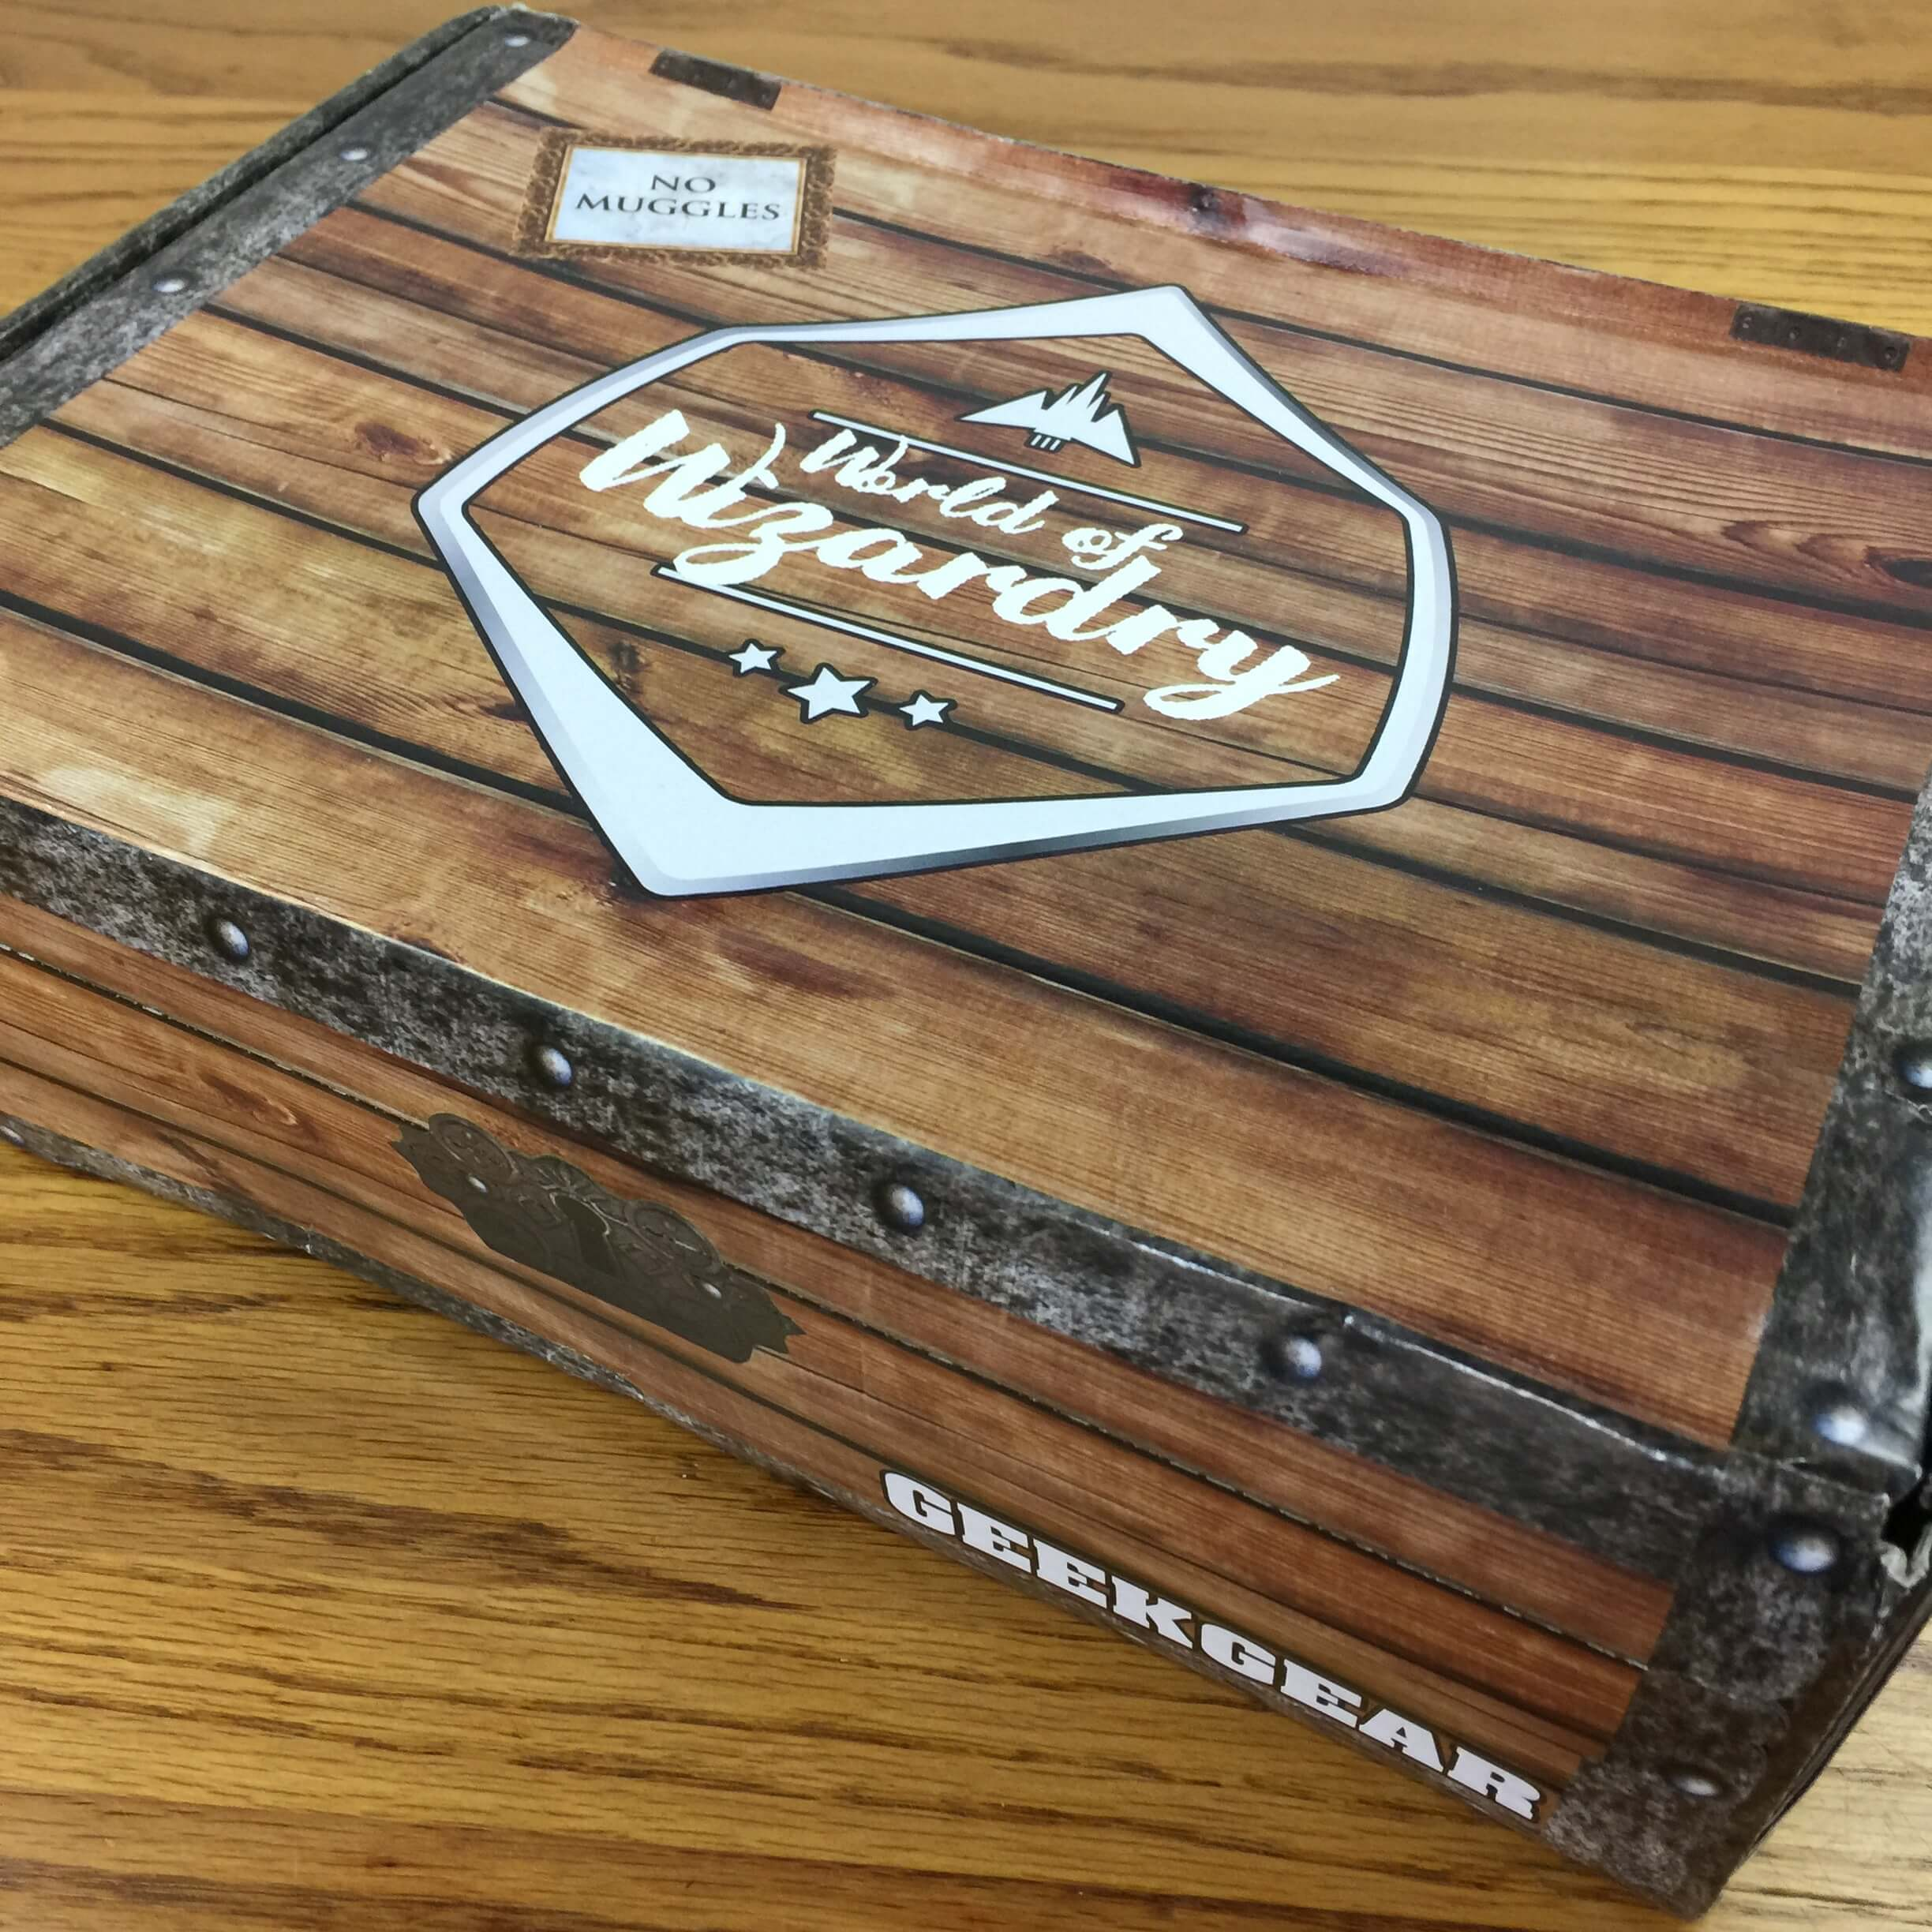 Geek Gear World of Wizardry September 2016 Subscription Box Review